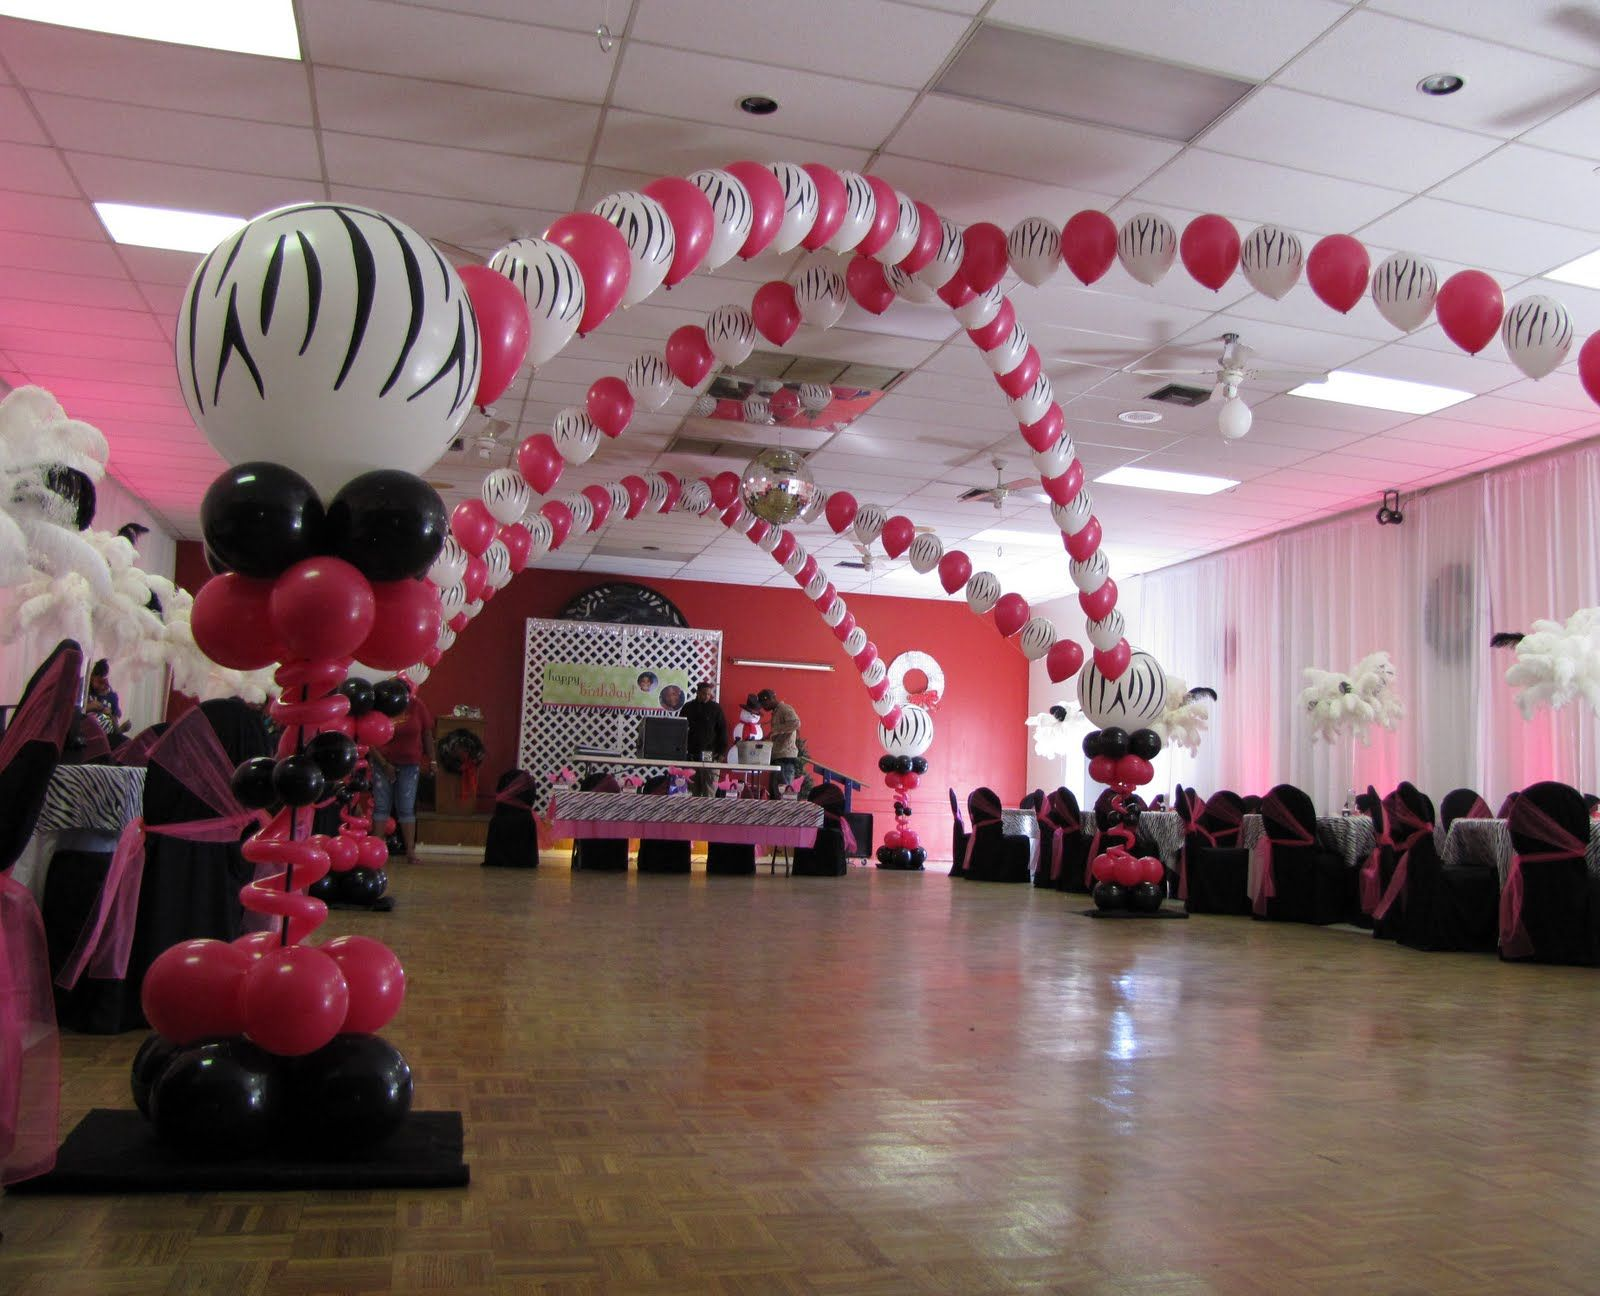 Sweet 16 Room Decorations Event Decor Custom Balloon decor